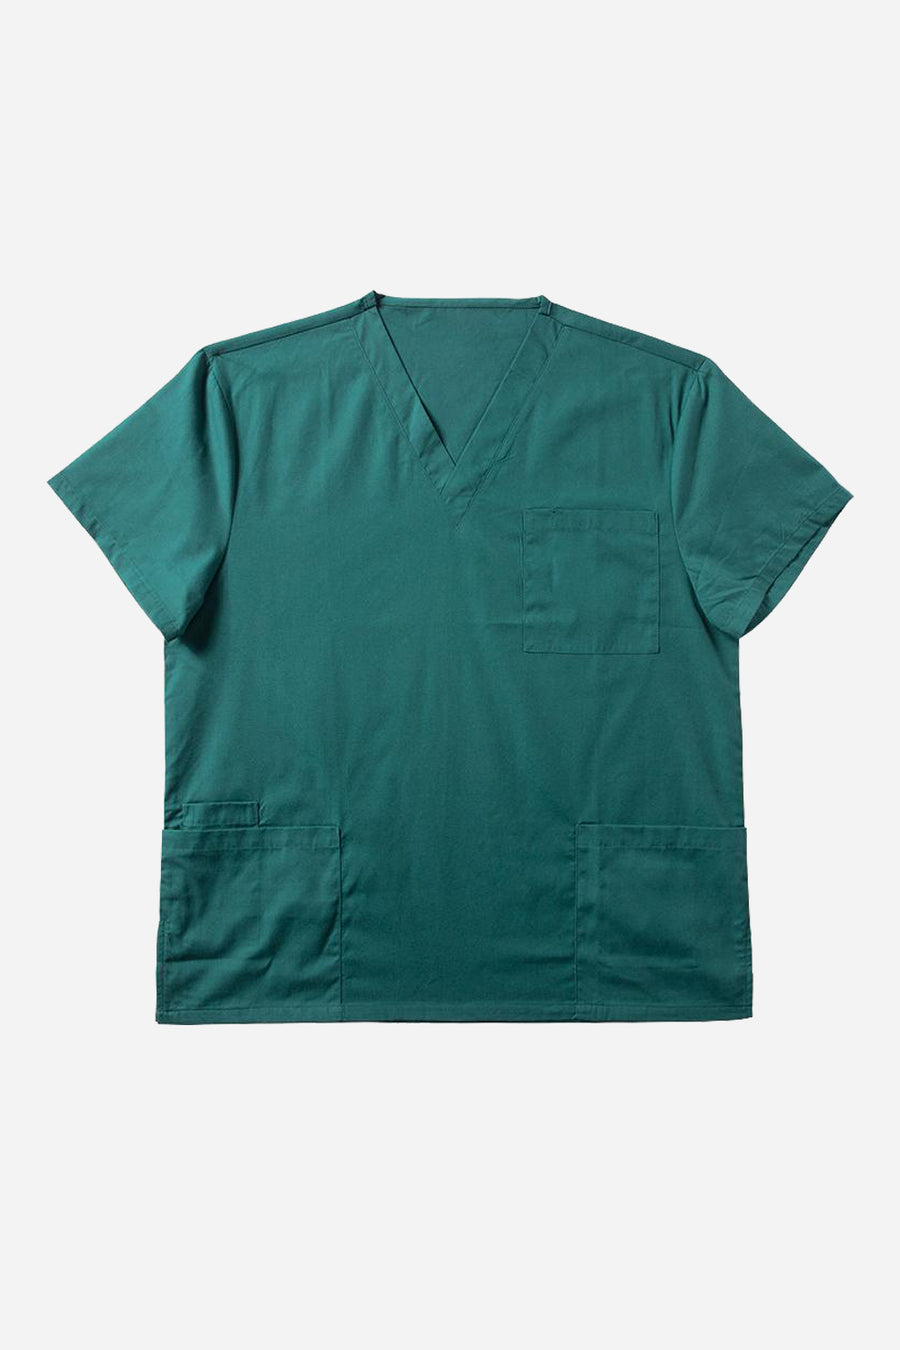 Green scrub top women's